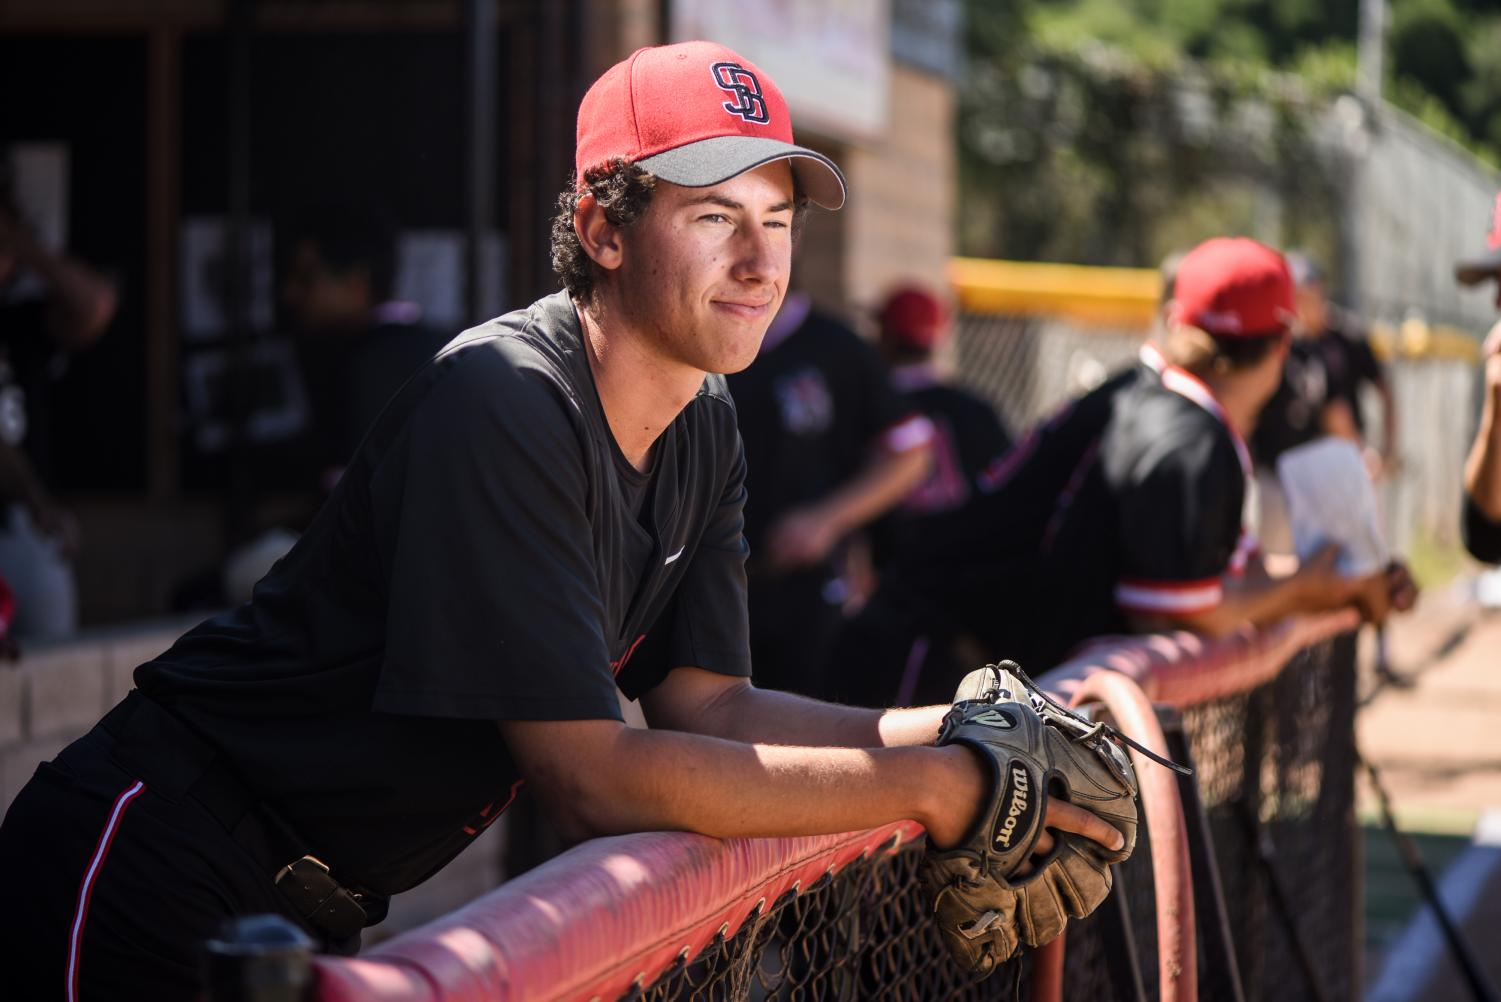 City College pitcher Ian Churchill stands in the Pershing Park baseball field dugout before a game on Tuesday, April 9, 2019, in Santa Barbara, Calif.